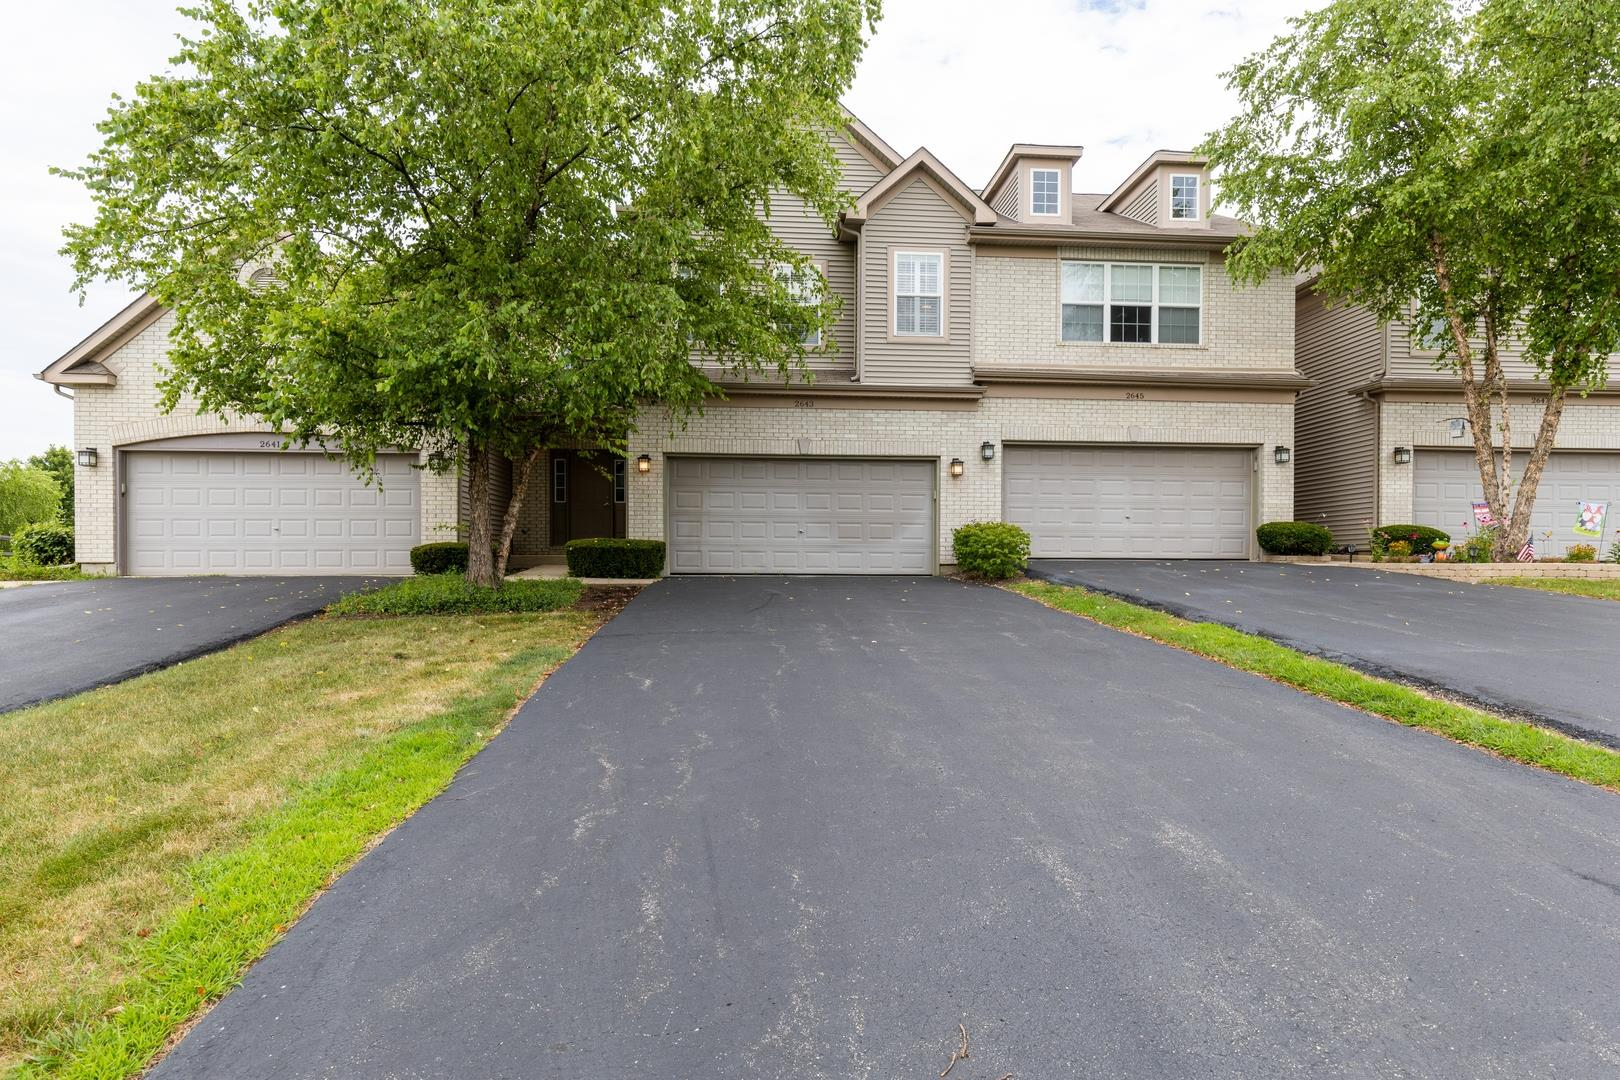 2643 Granite Court #0, Crystal Lake, IL 60012 - #: 10791239